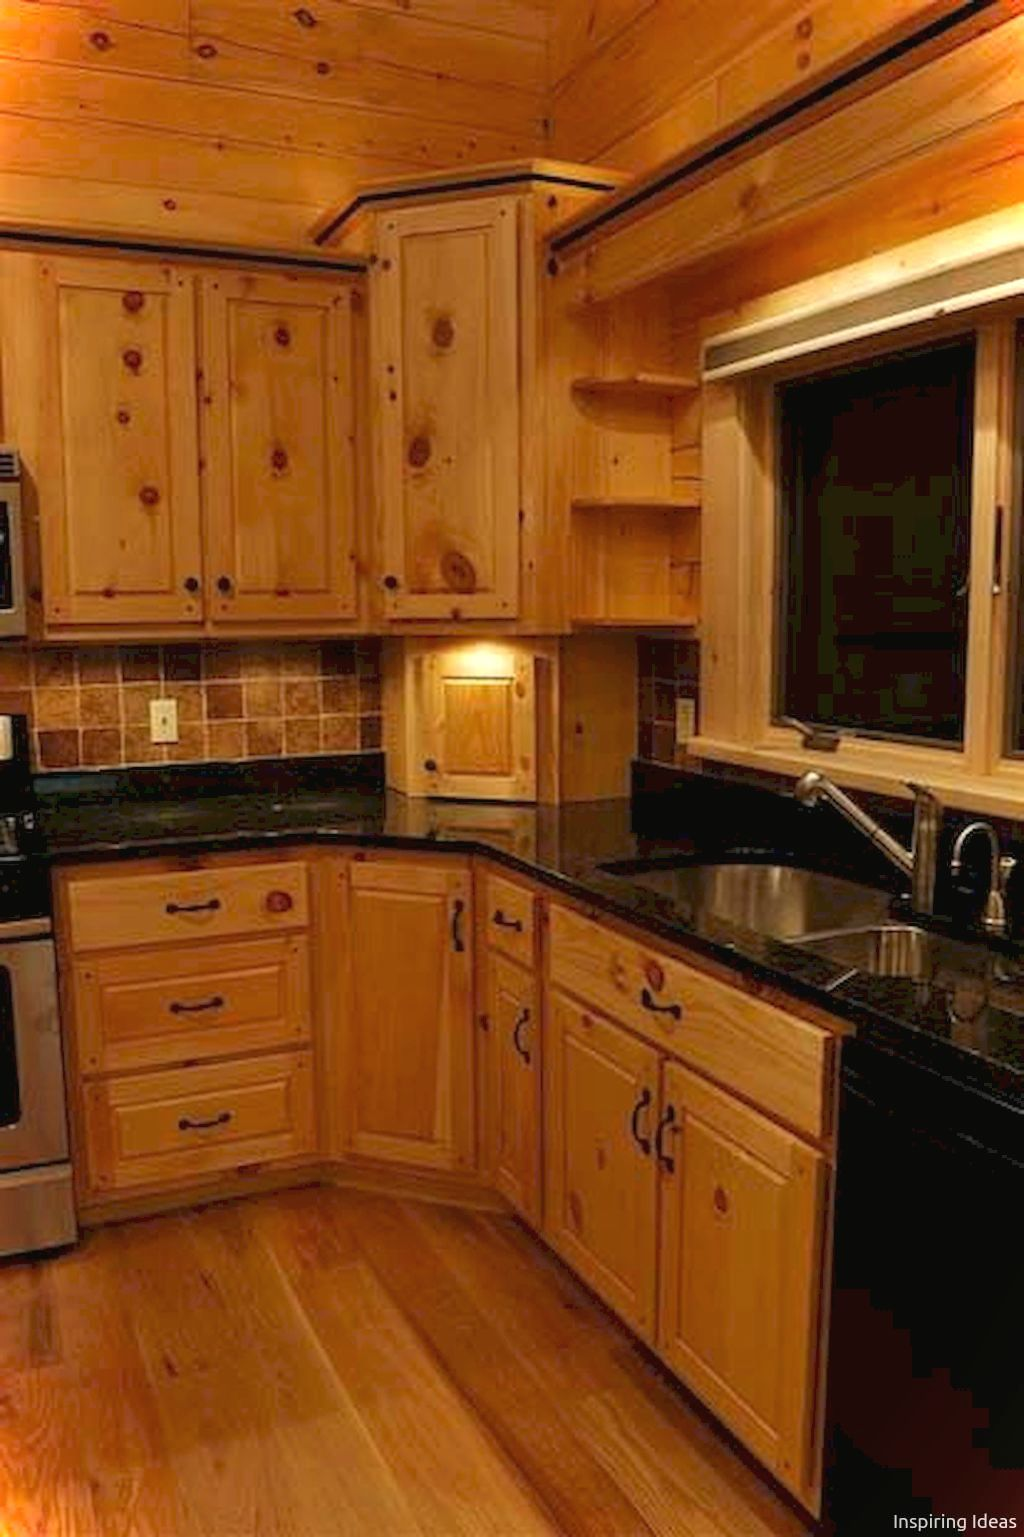 Room A Holic All Inspiring Ideas Are Here Pine Kitchen Cabinets Rustic Kitchen Cabinets Kitchen Cabinet Styles